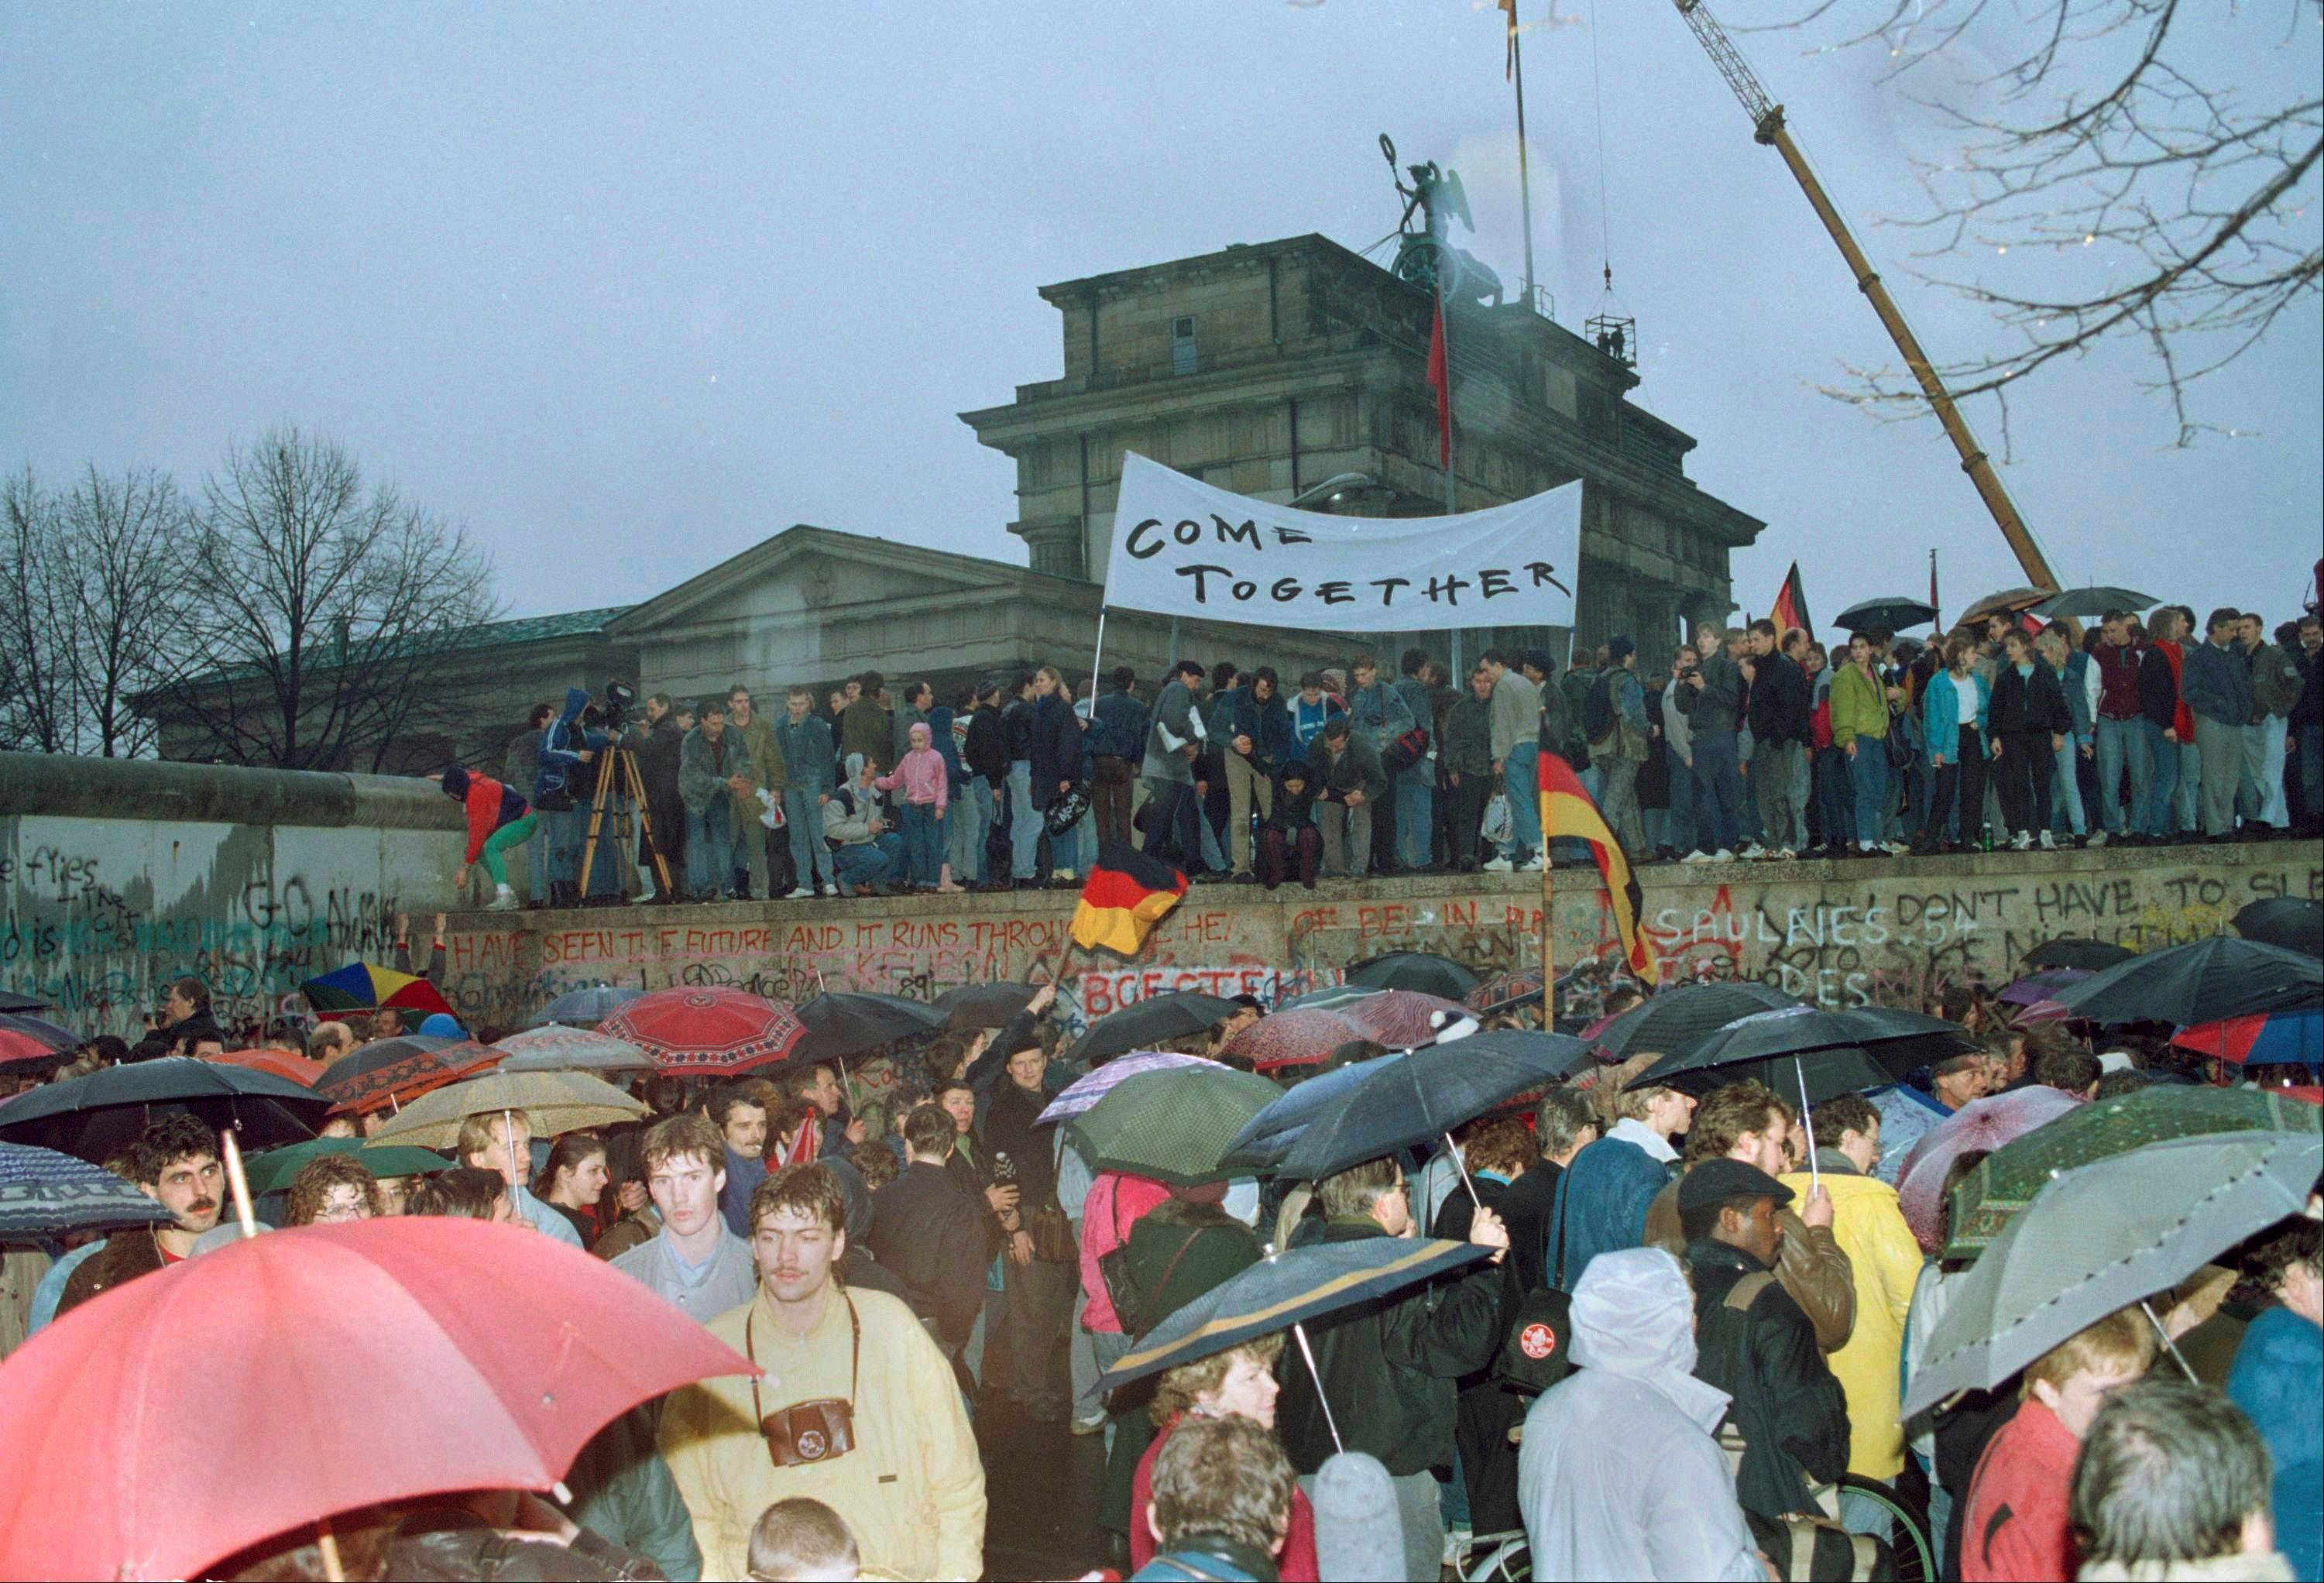 This Dec. 22, 1989 file photo shows thousands of Berliners crowding at the Brandenburg Gate and stand on top of the Berlin Wall after two new crossings were made, reuniting the divided city after 28 years. In 2014, Berlin will mark 25 years since the wall was breached. Events and exhibits commemorating the anniversary will include an installation of illuminated balloons on a 7.5-mile path where Berlin was once divided by the wall into East and West.